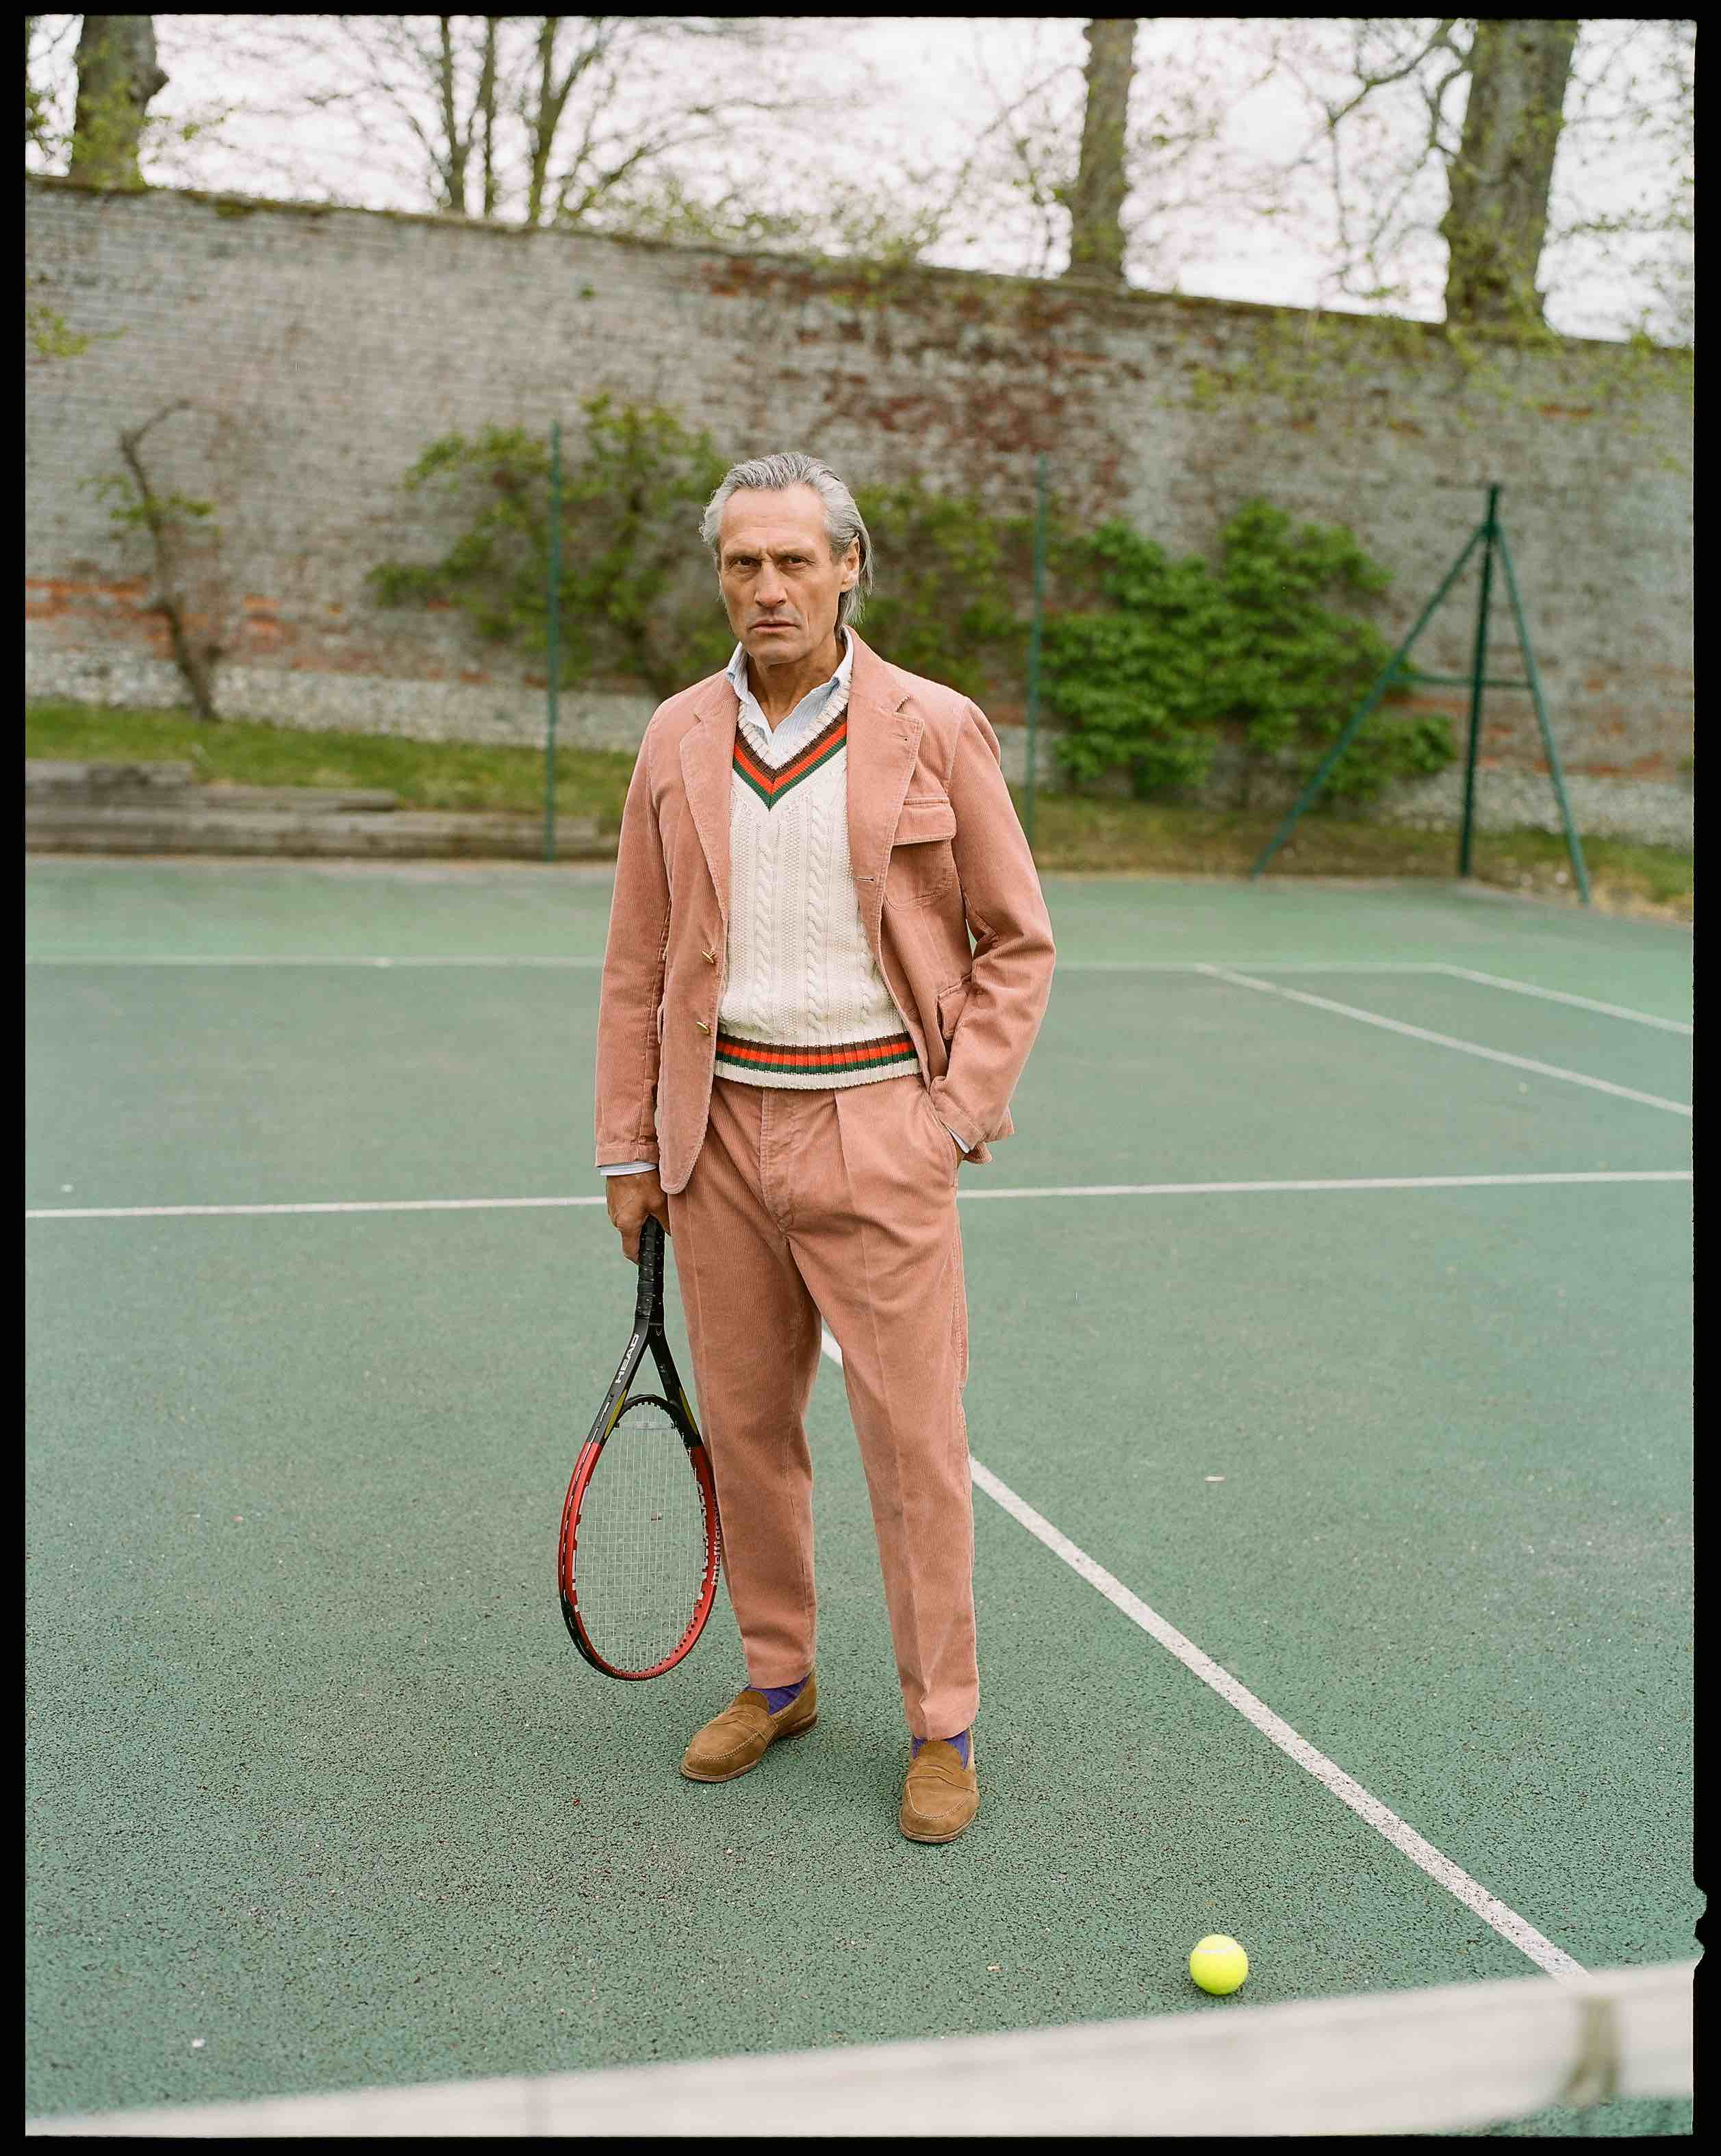 The Rose Cord Mk. IV Games Suit and Cricket Jumper